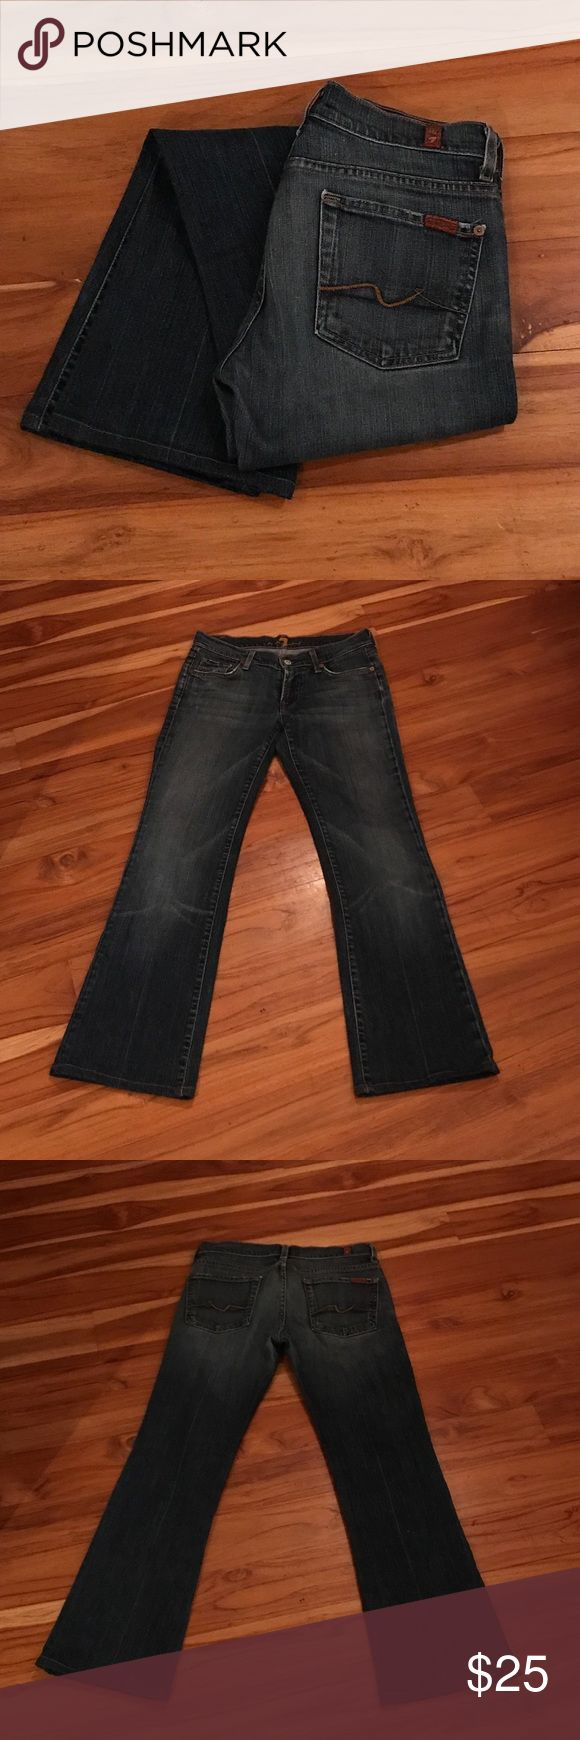 "7FAM jeans sz 28/29 These are your classic sevens jeans! The inseam is 29"" and there is some pore pilling near the back pockets. Hems are in perfect condition! 7 For All Mankind Jeans Boot Cut"